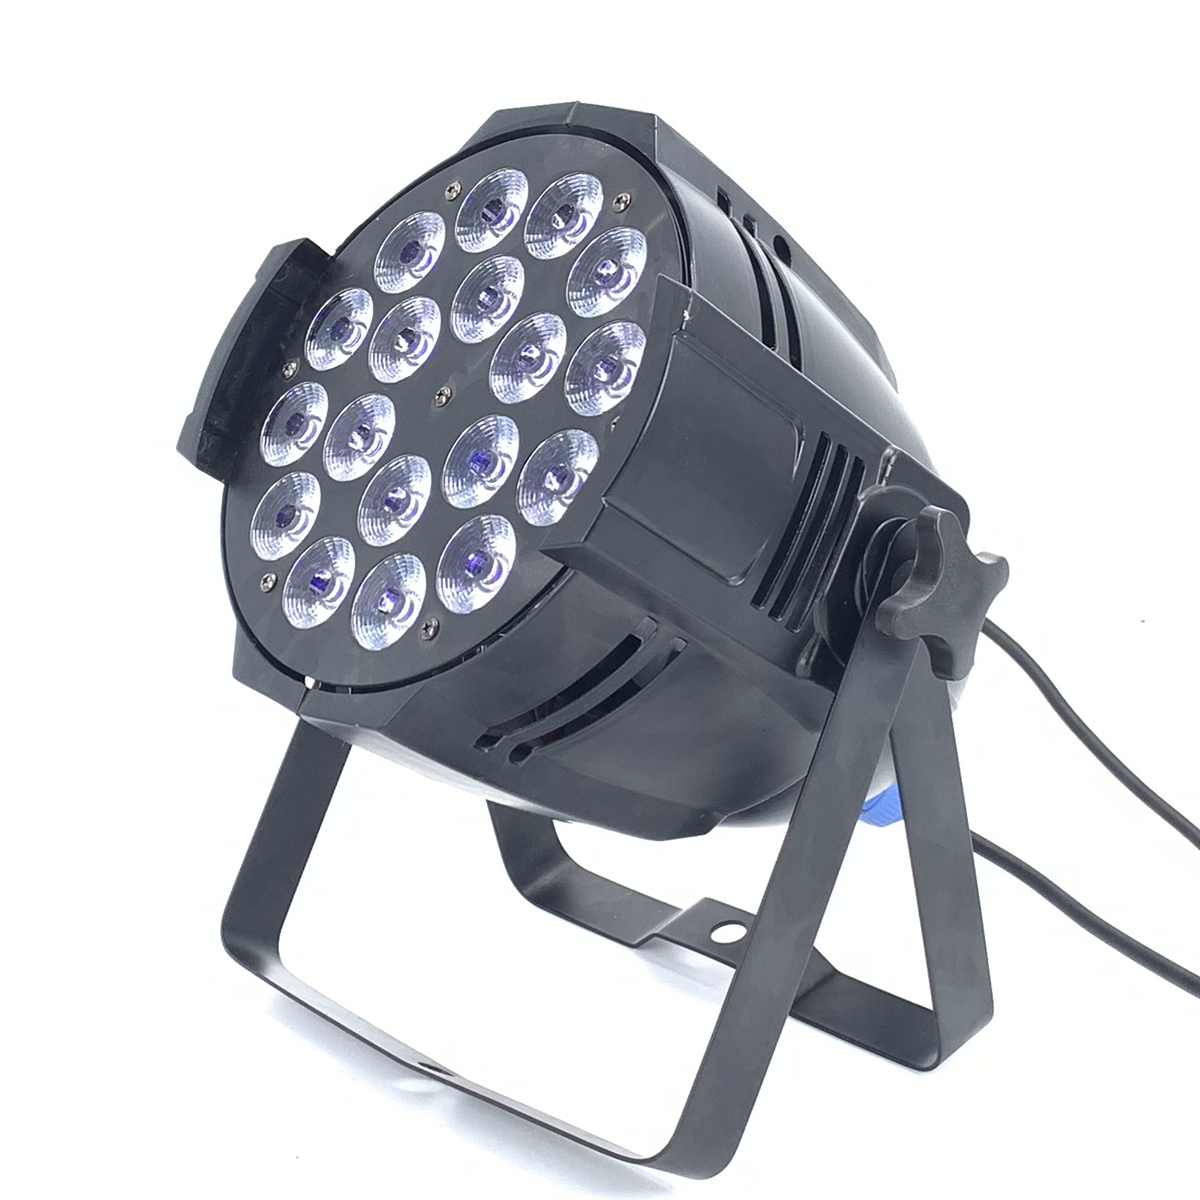 18x18w 6in1 Rgbwa+uv  Led Par Light DJ Par Cans  Aluminum Alloy  Dmx 512 Light Dmx Strobe Wash Lighting Stage Lighting Effects